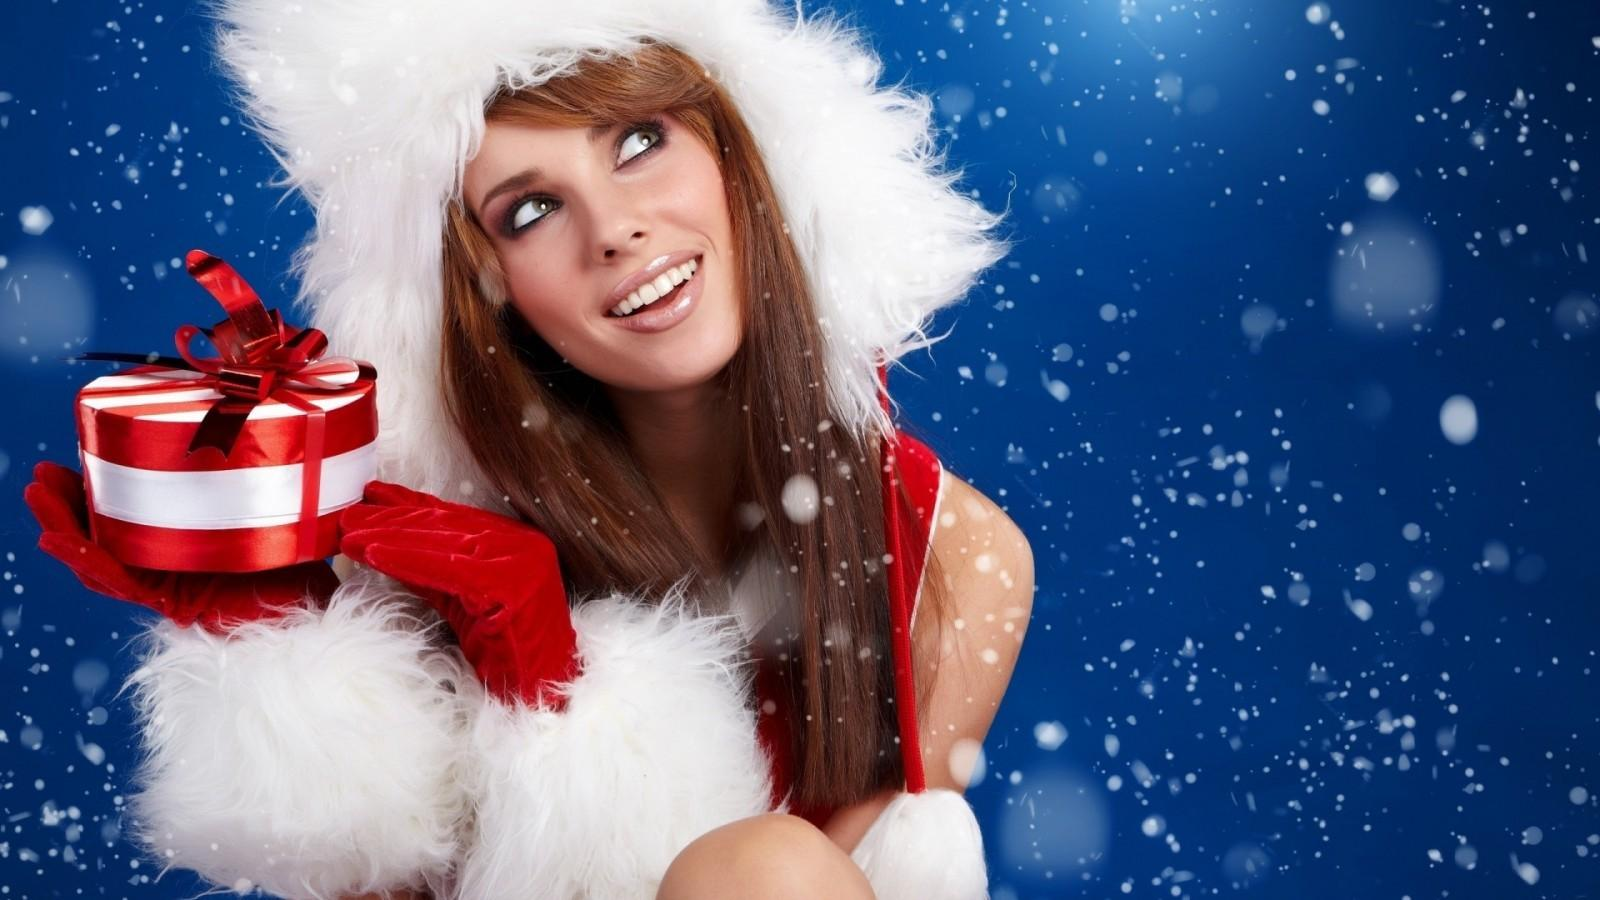 christmas-hot-girls-girls-in-bikinis-young-legal-pictures